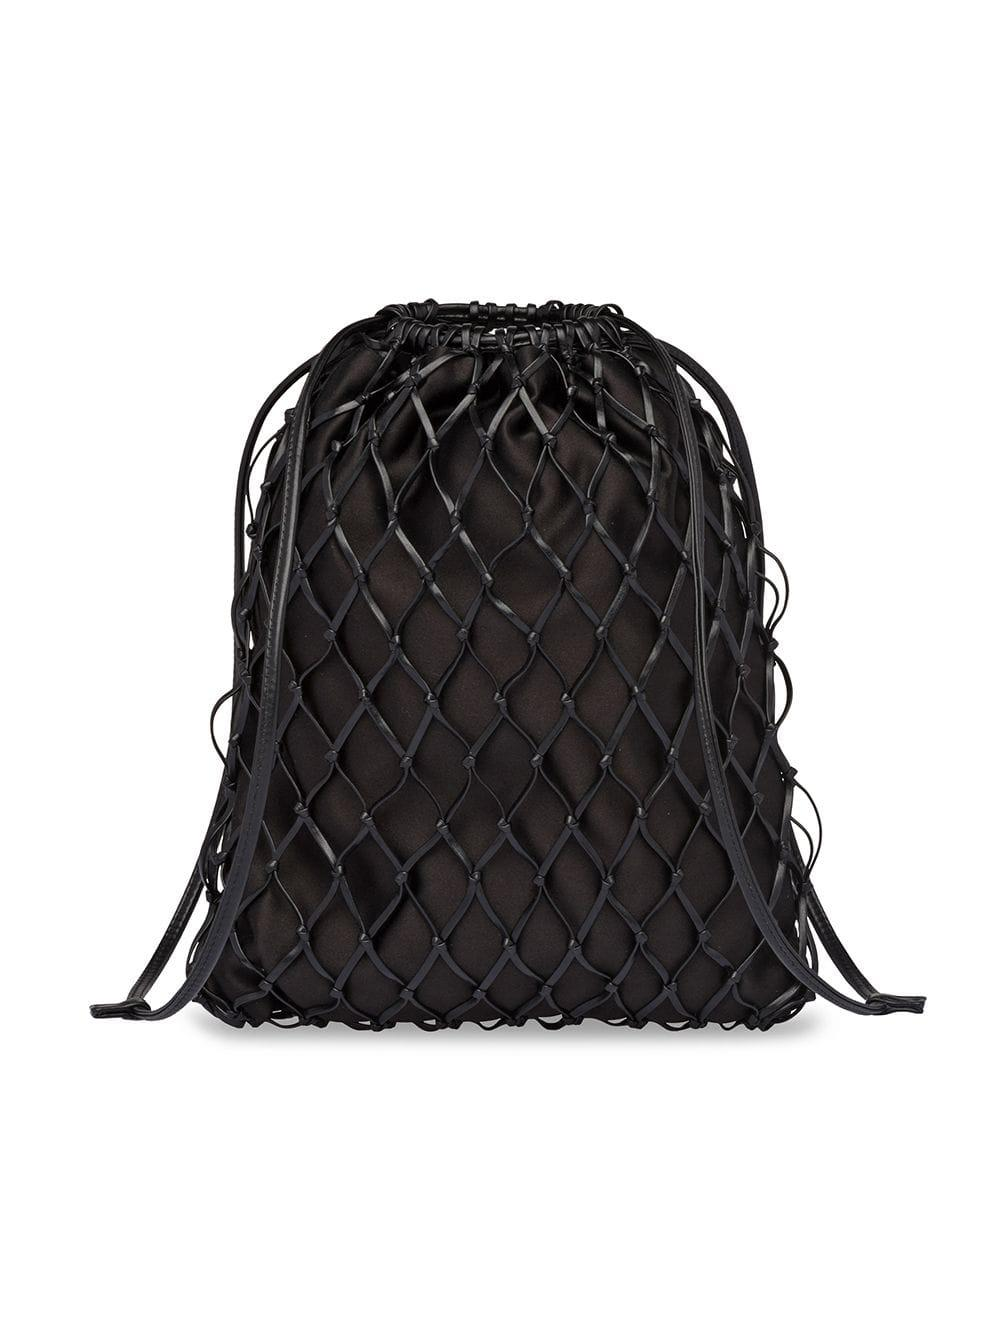 f29661260abc86 Prada - Black Net Crossbody Bag - Lyst. View fullscreen